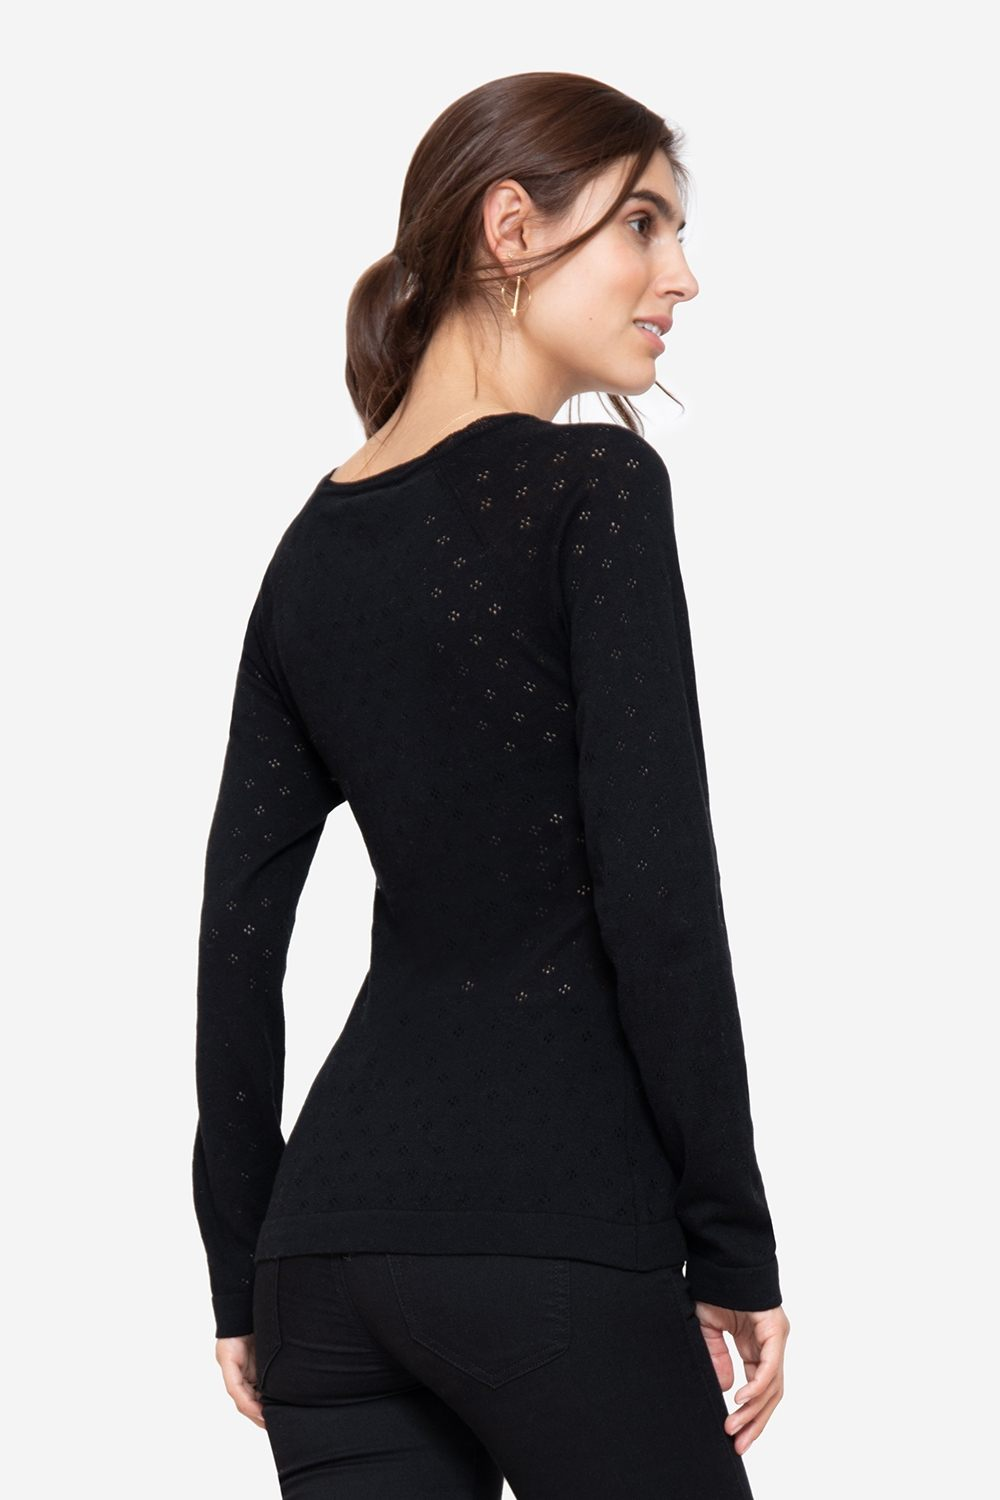 Black nursing jumper with V-neck in Organic cotton, seen from behind